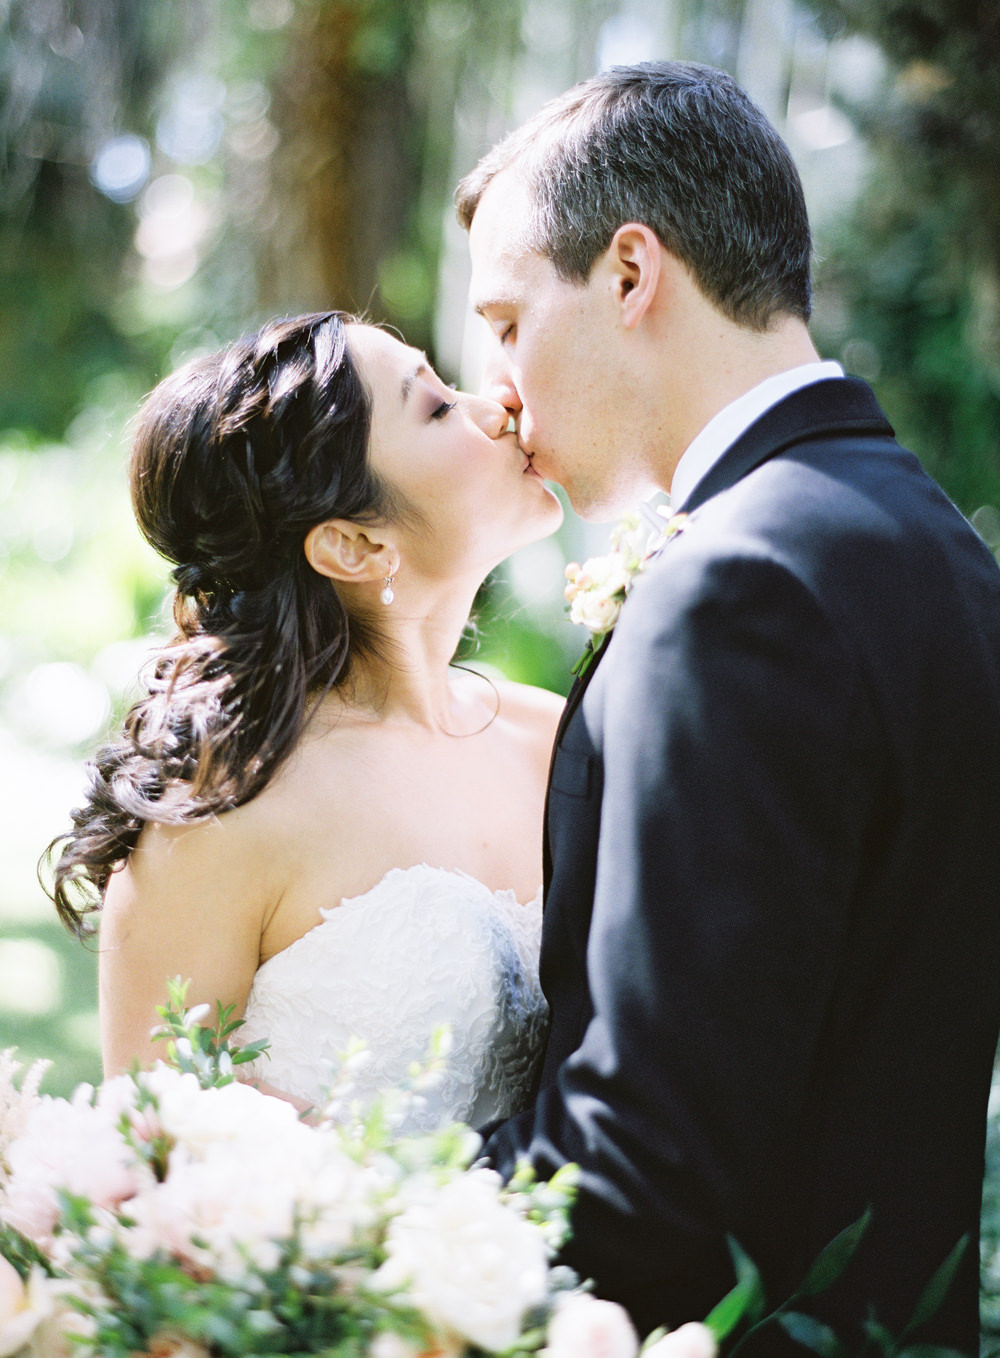 RomanticGardenWedding_WhiskersandWillow_045.jpg